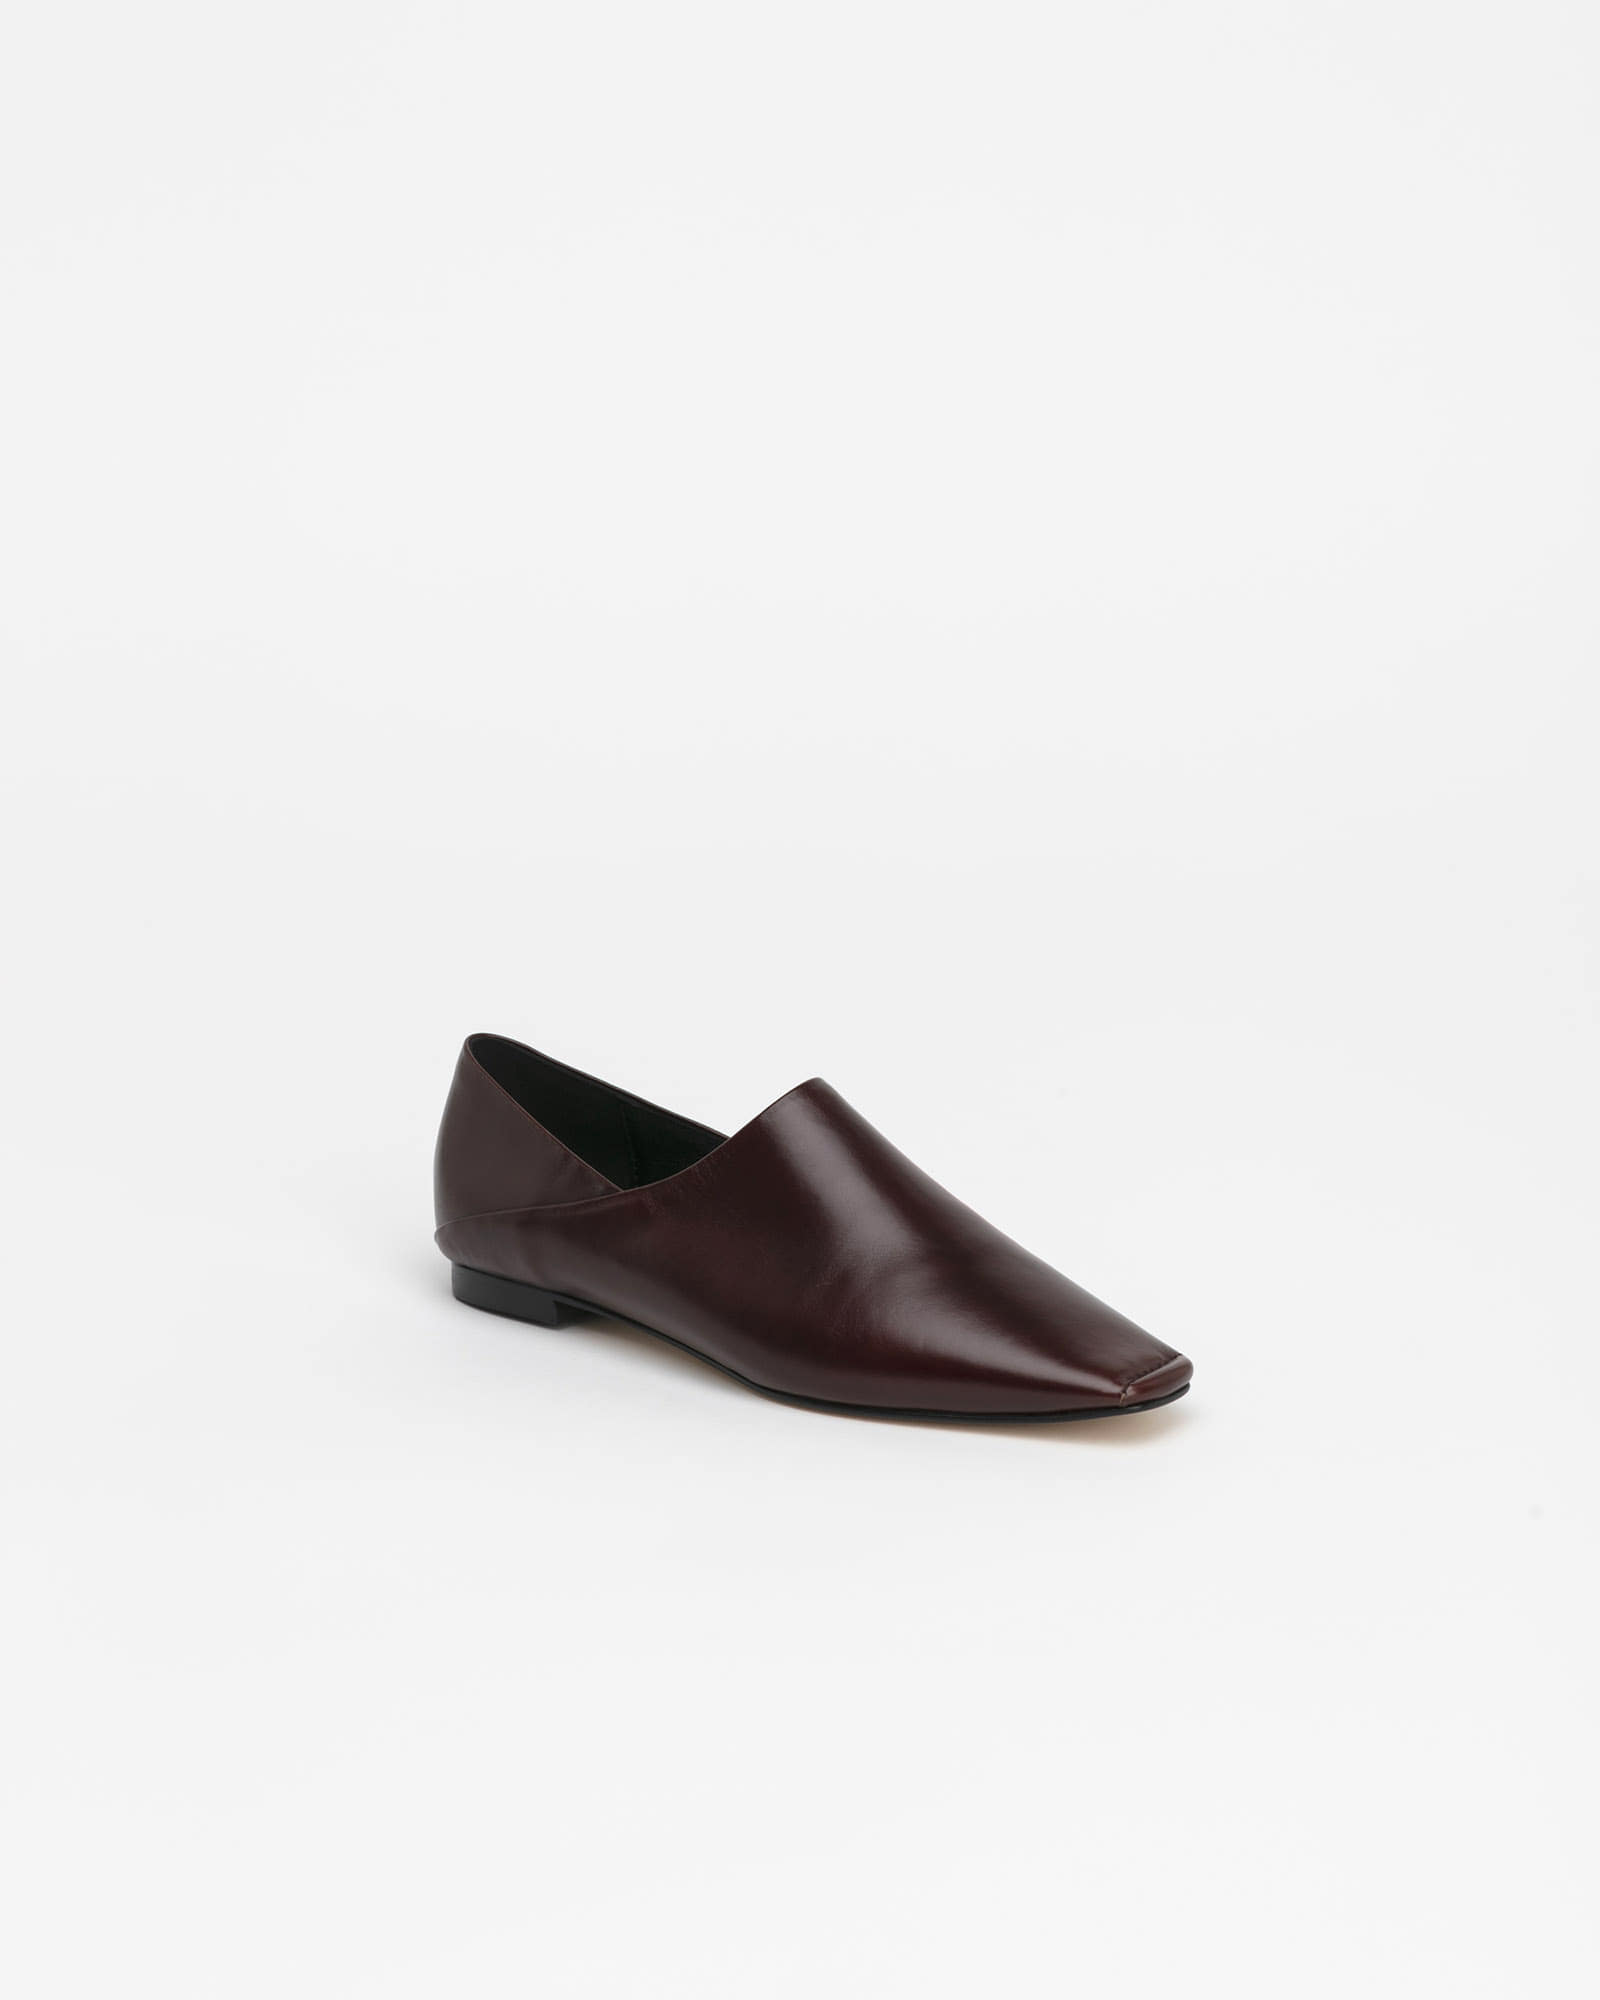 Vessel Flat Shoes in Textured Wine